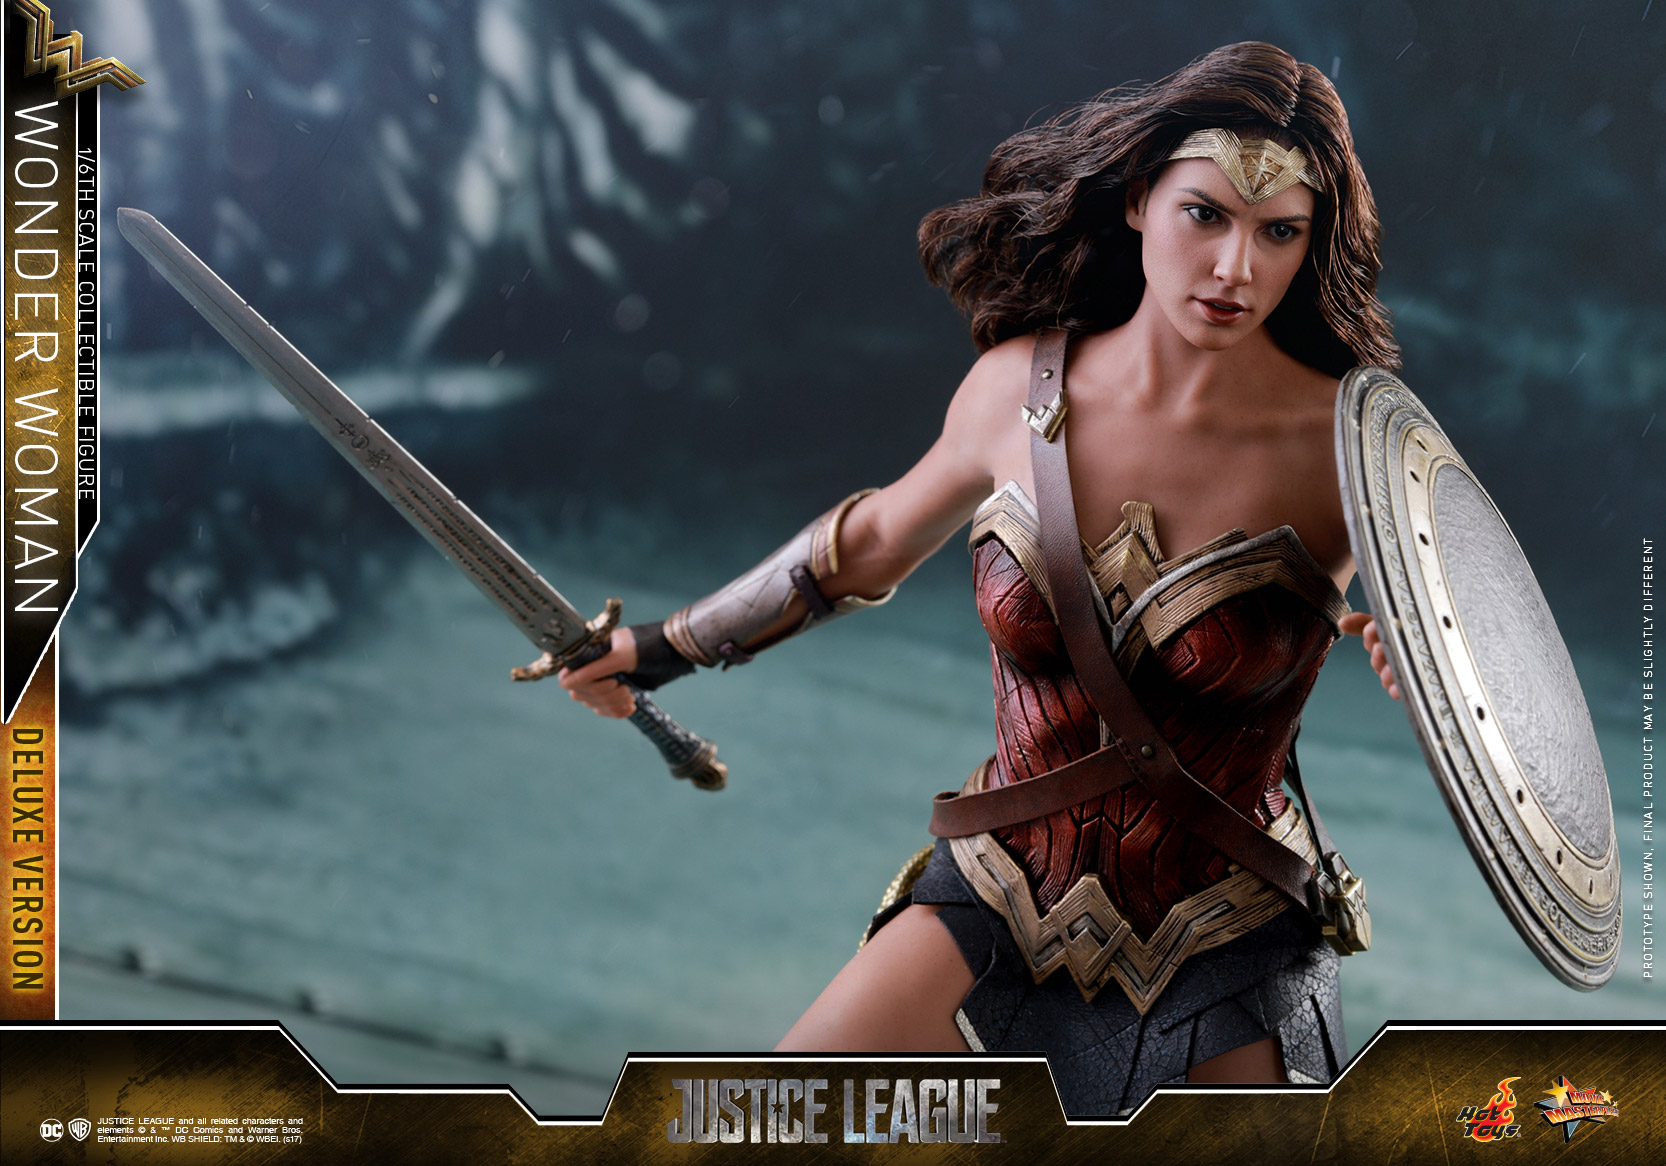 Hot-Toys-Justice-League-Wonder-Woman-collectible-figure-Deluxe_PR-15.jpg